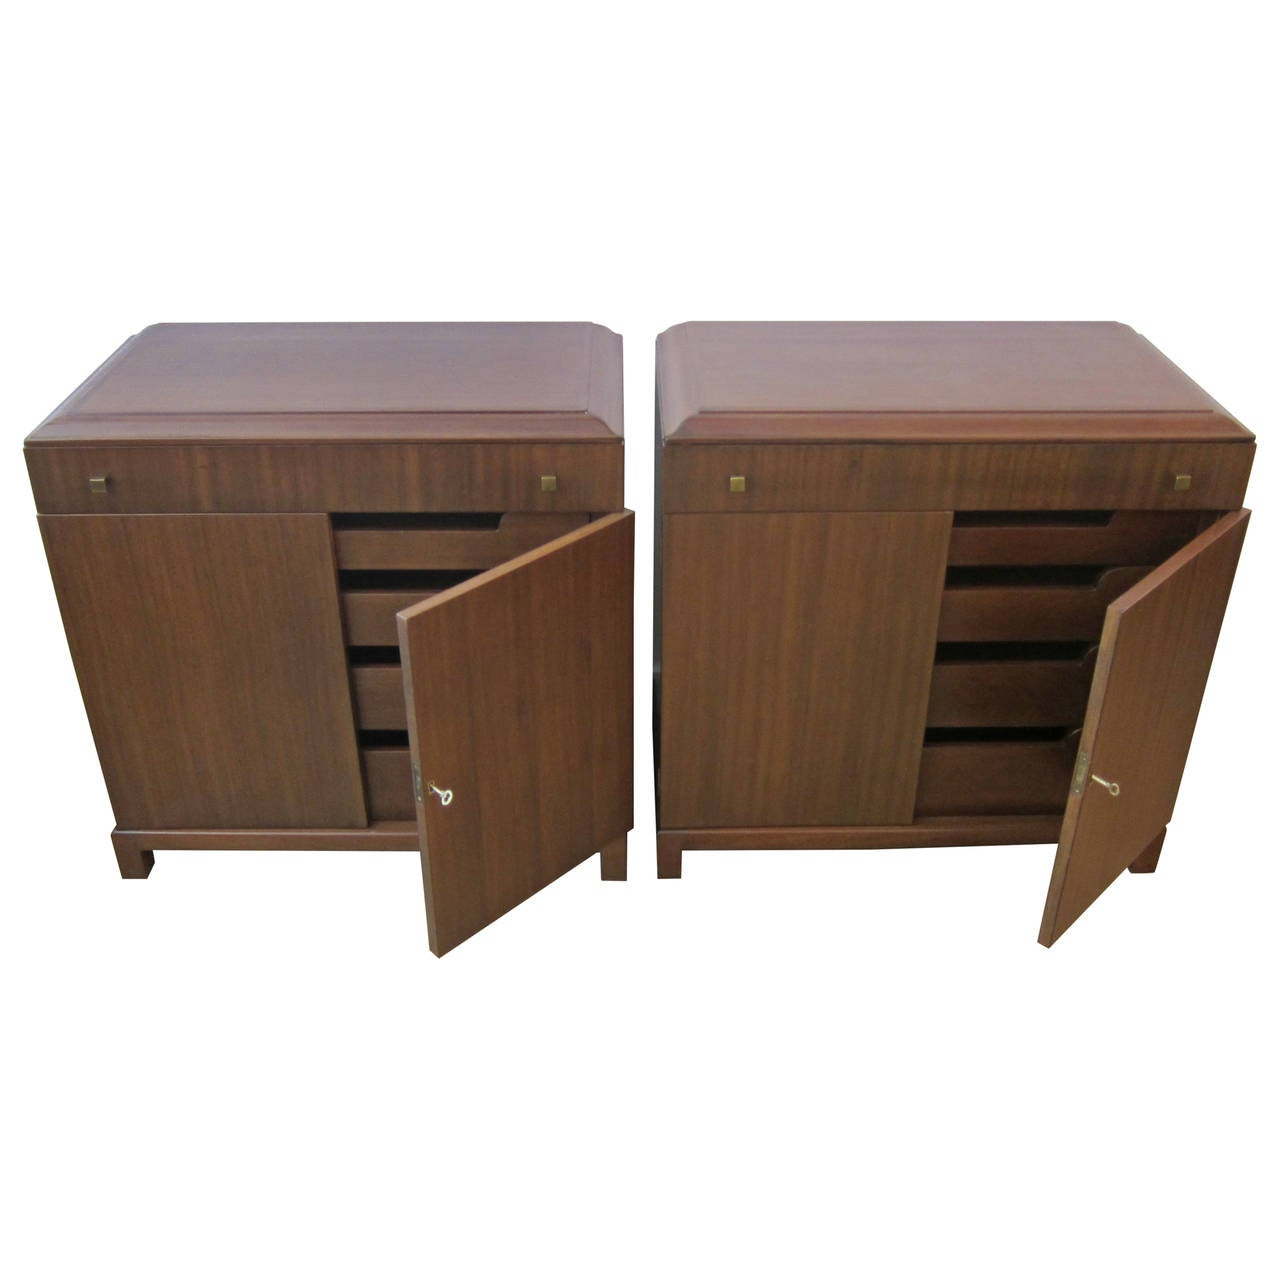 Mid century modern nightstands for sale at 1stdibs for Modern nightstands for sale